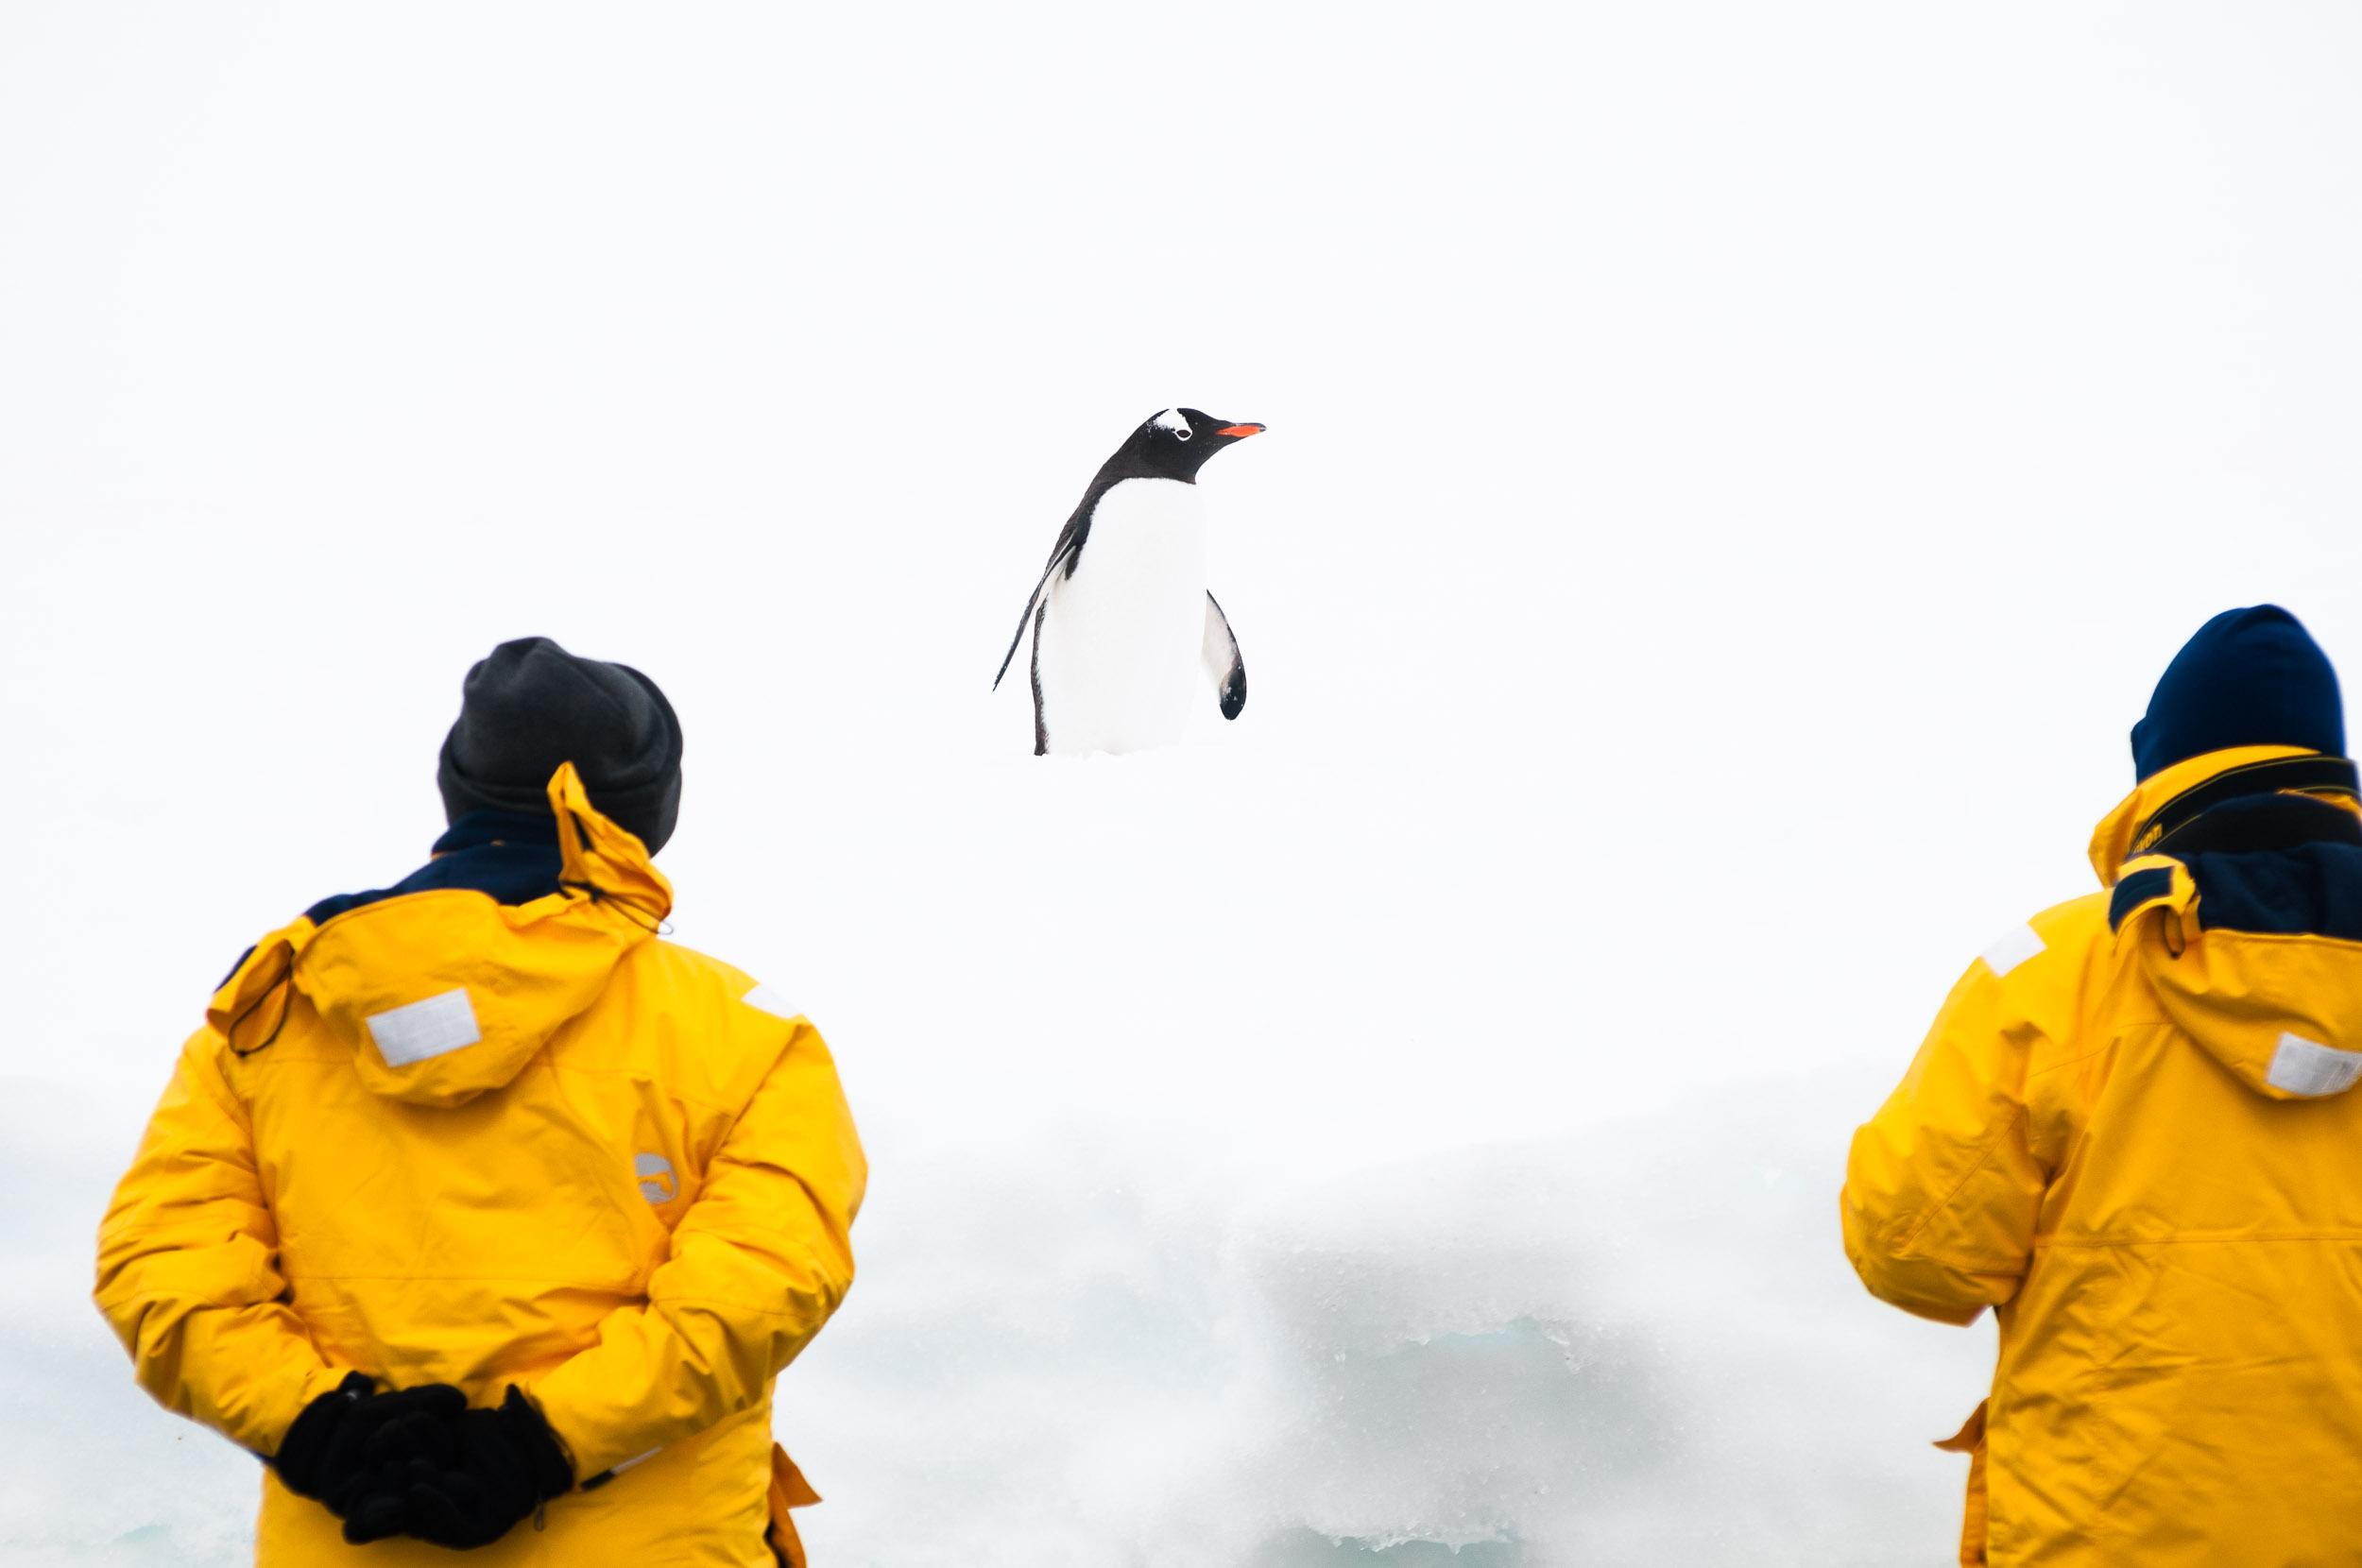 Gentoo Penguin encounter, Cuverville Island, Danco Coast, Antarctica.